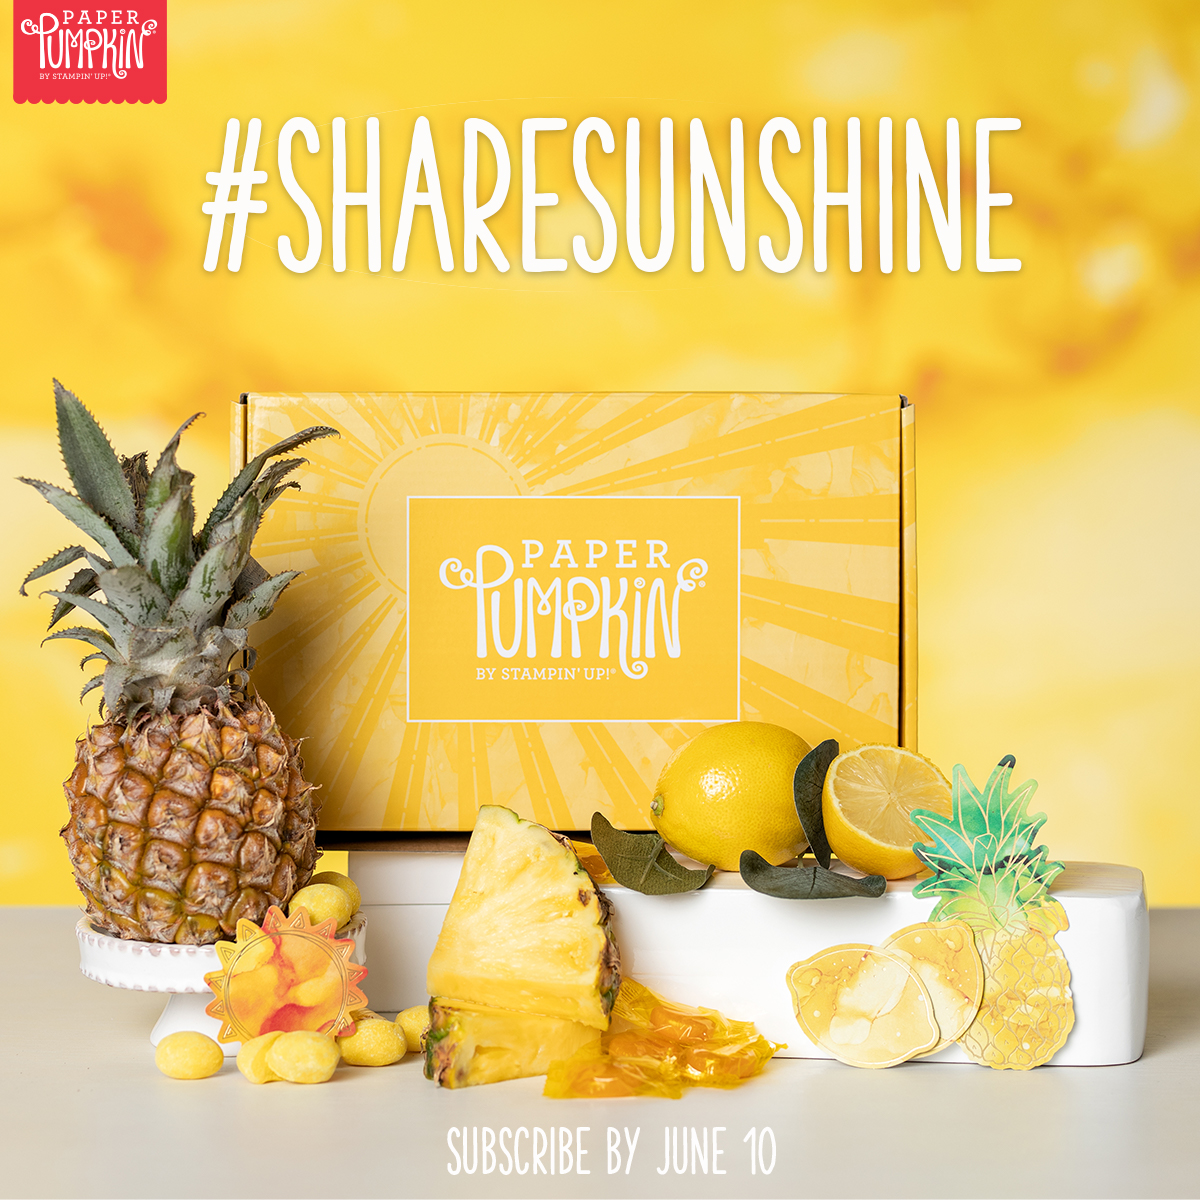 Spreading Sunshine - June 2020 Paper Pumpkin Kit